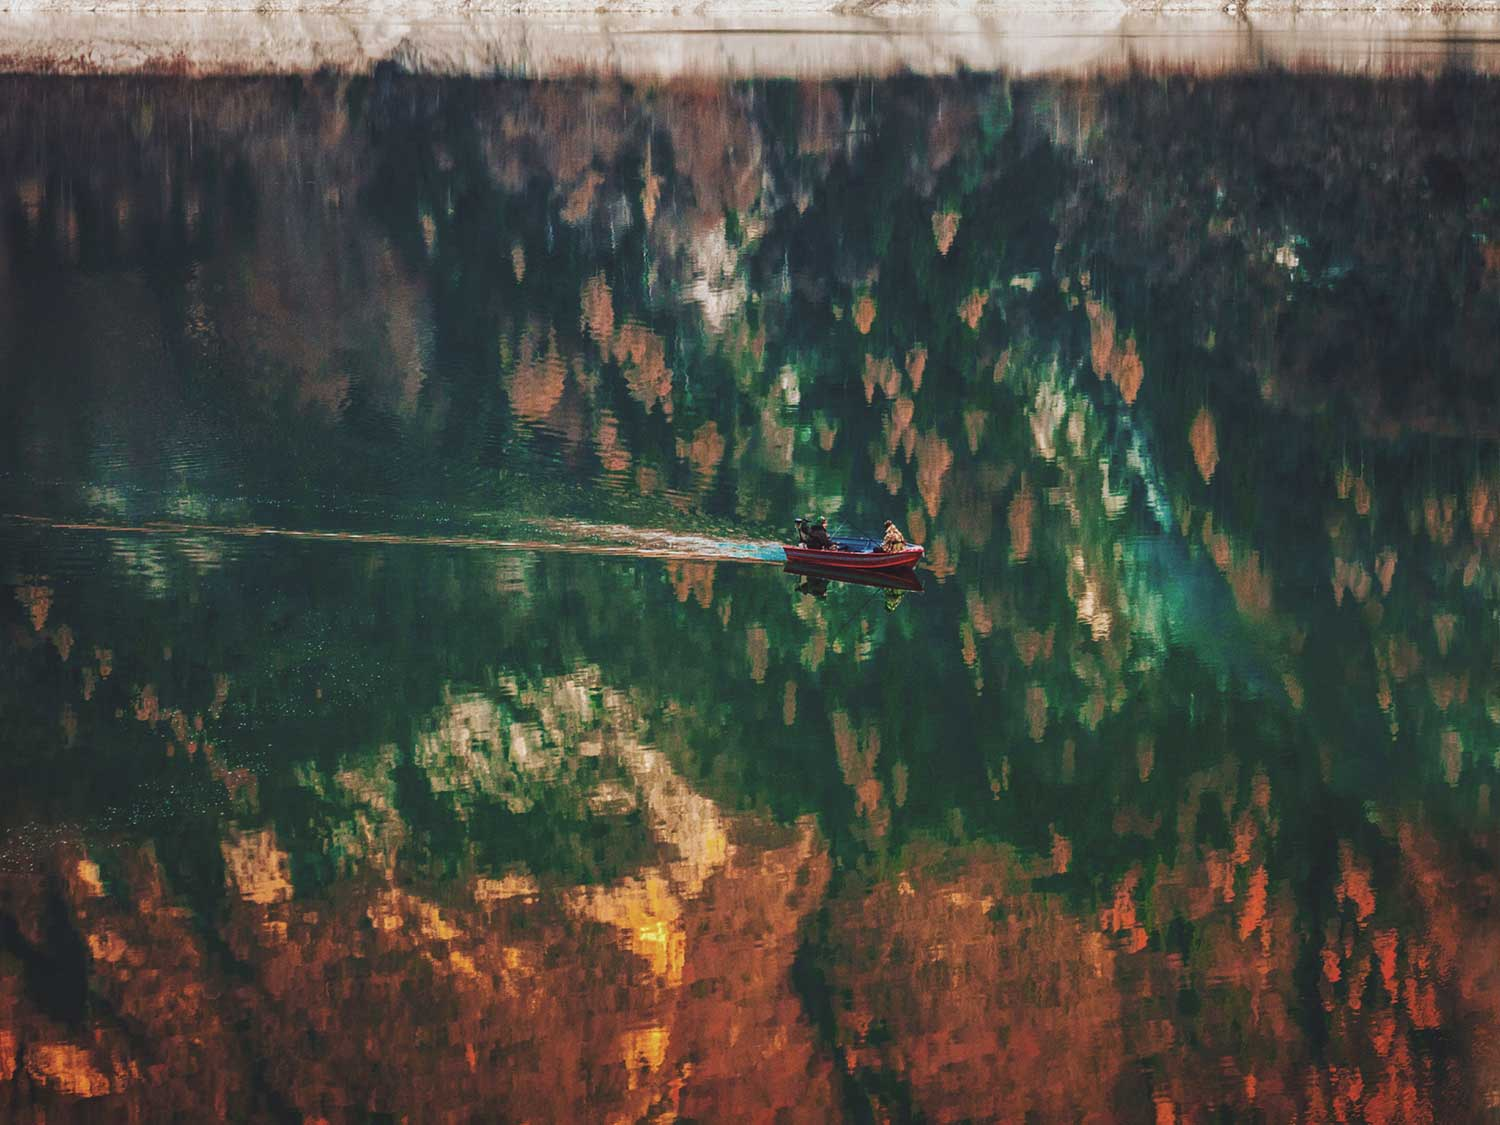 Boat on a river in Italy with autumn reflections